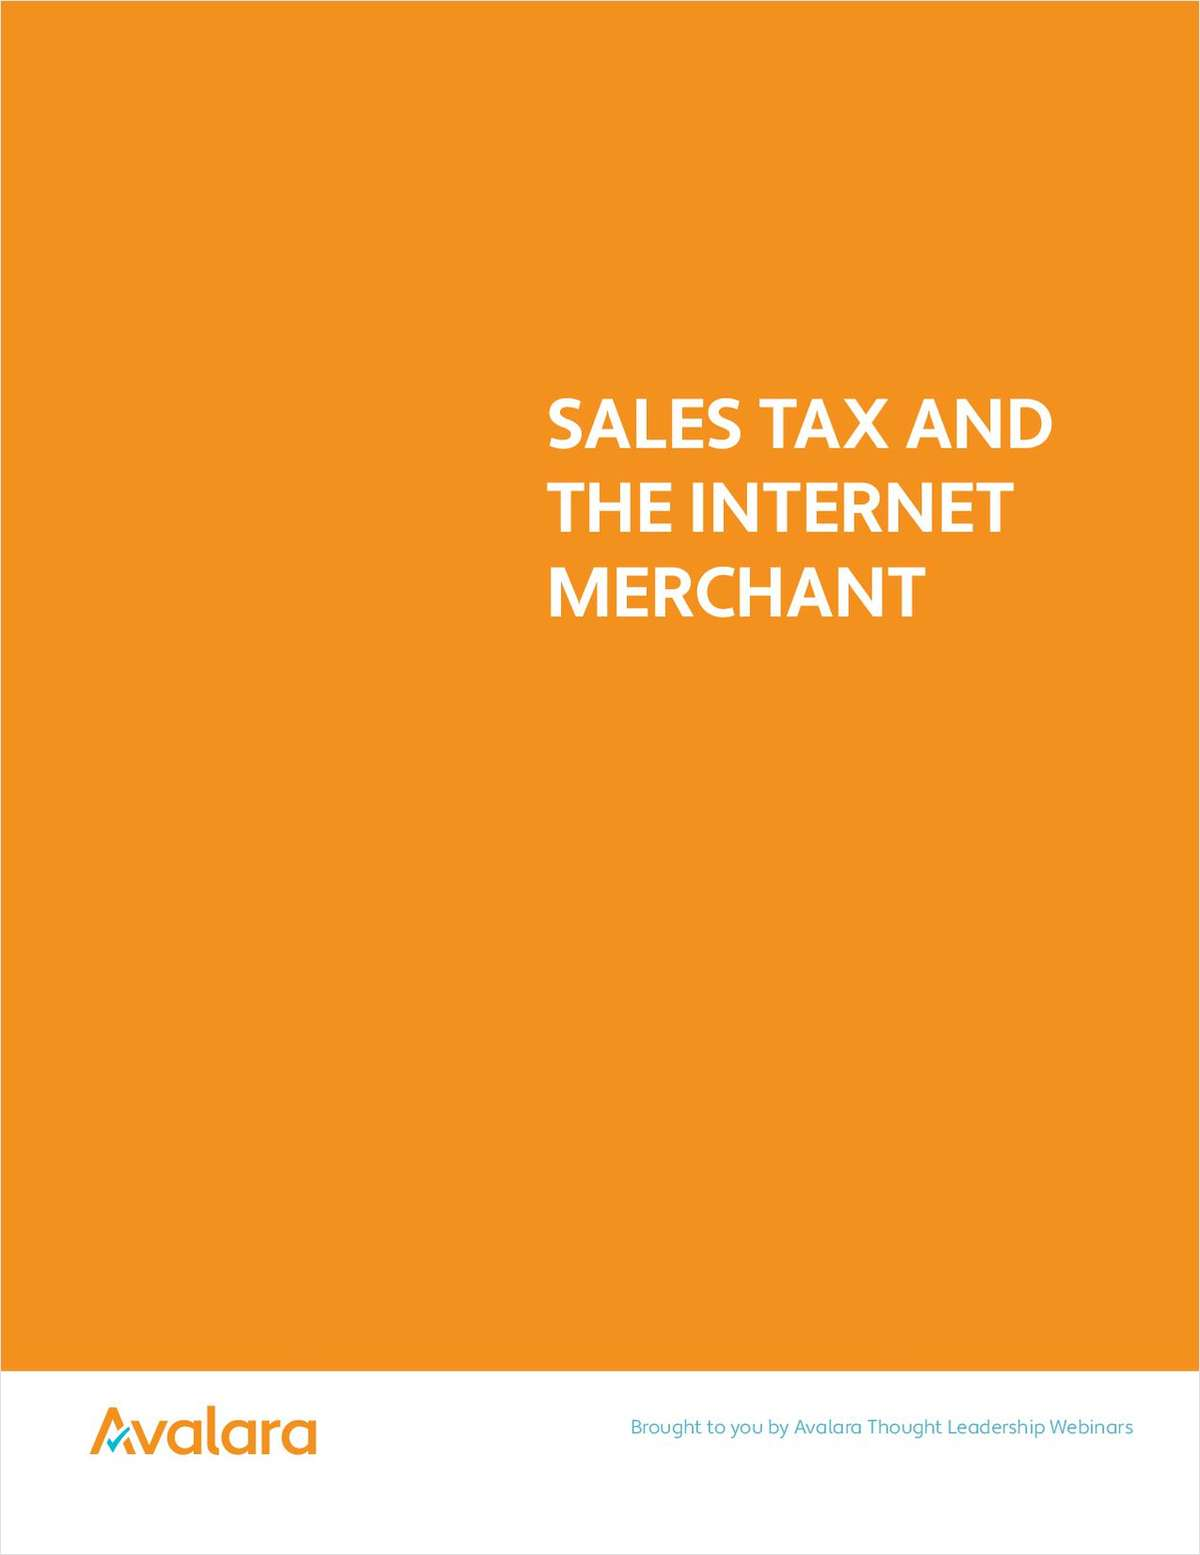 Sales Tax and the Internet Merchant